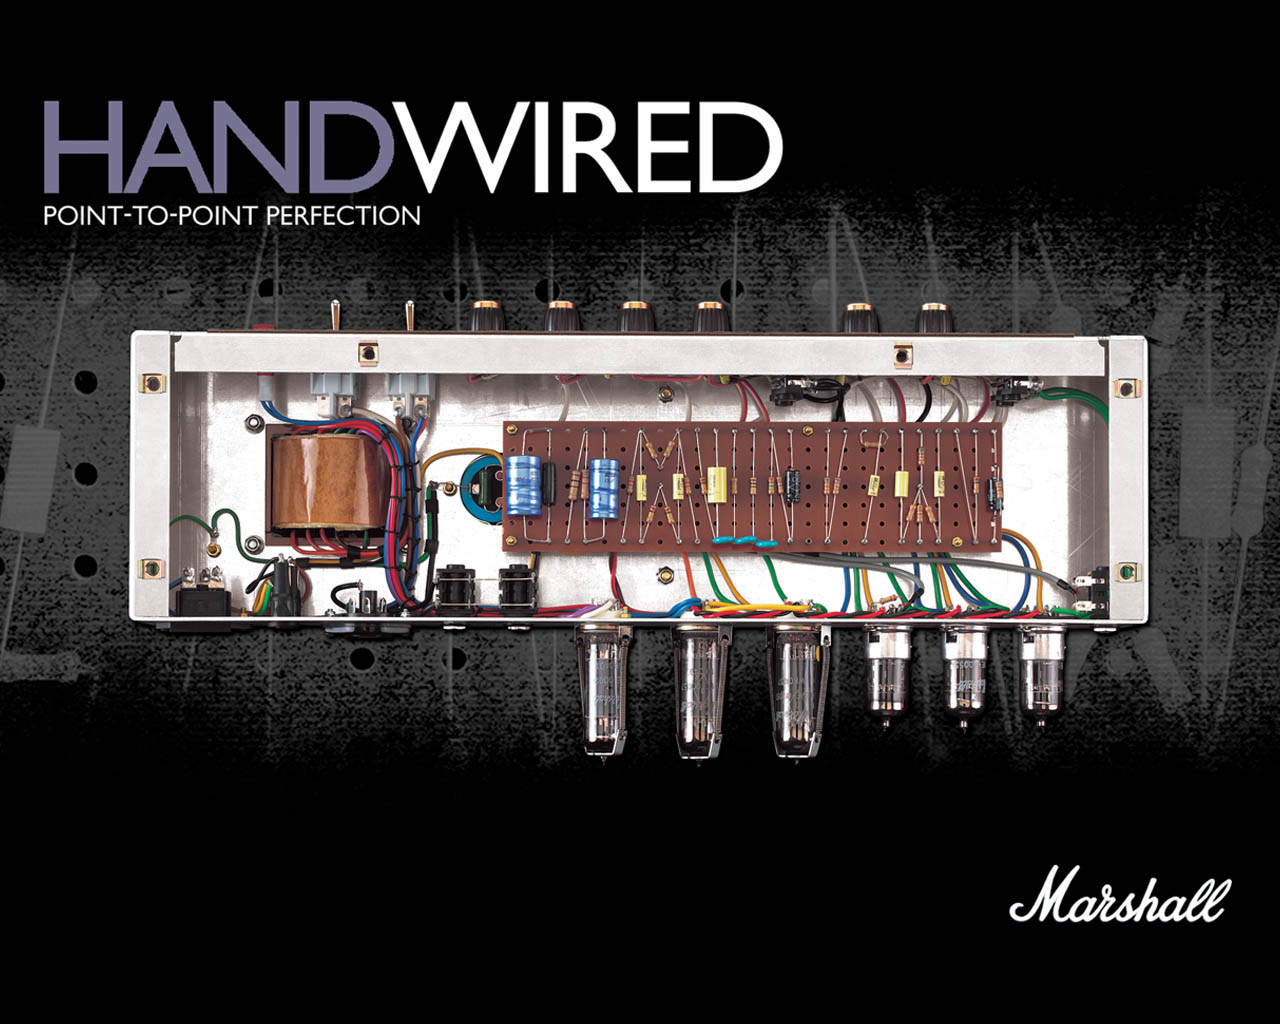 marshall_handwired_wallpaper_by_cmdry72-d349h45